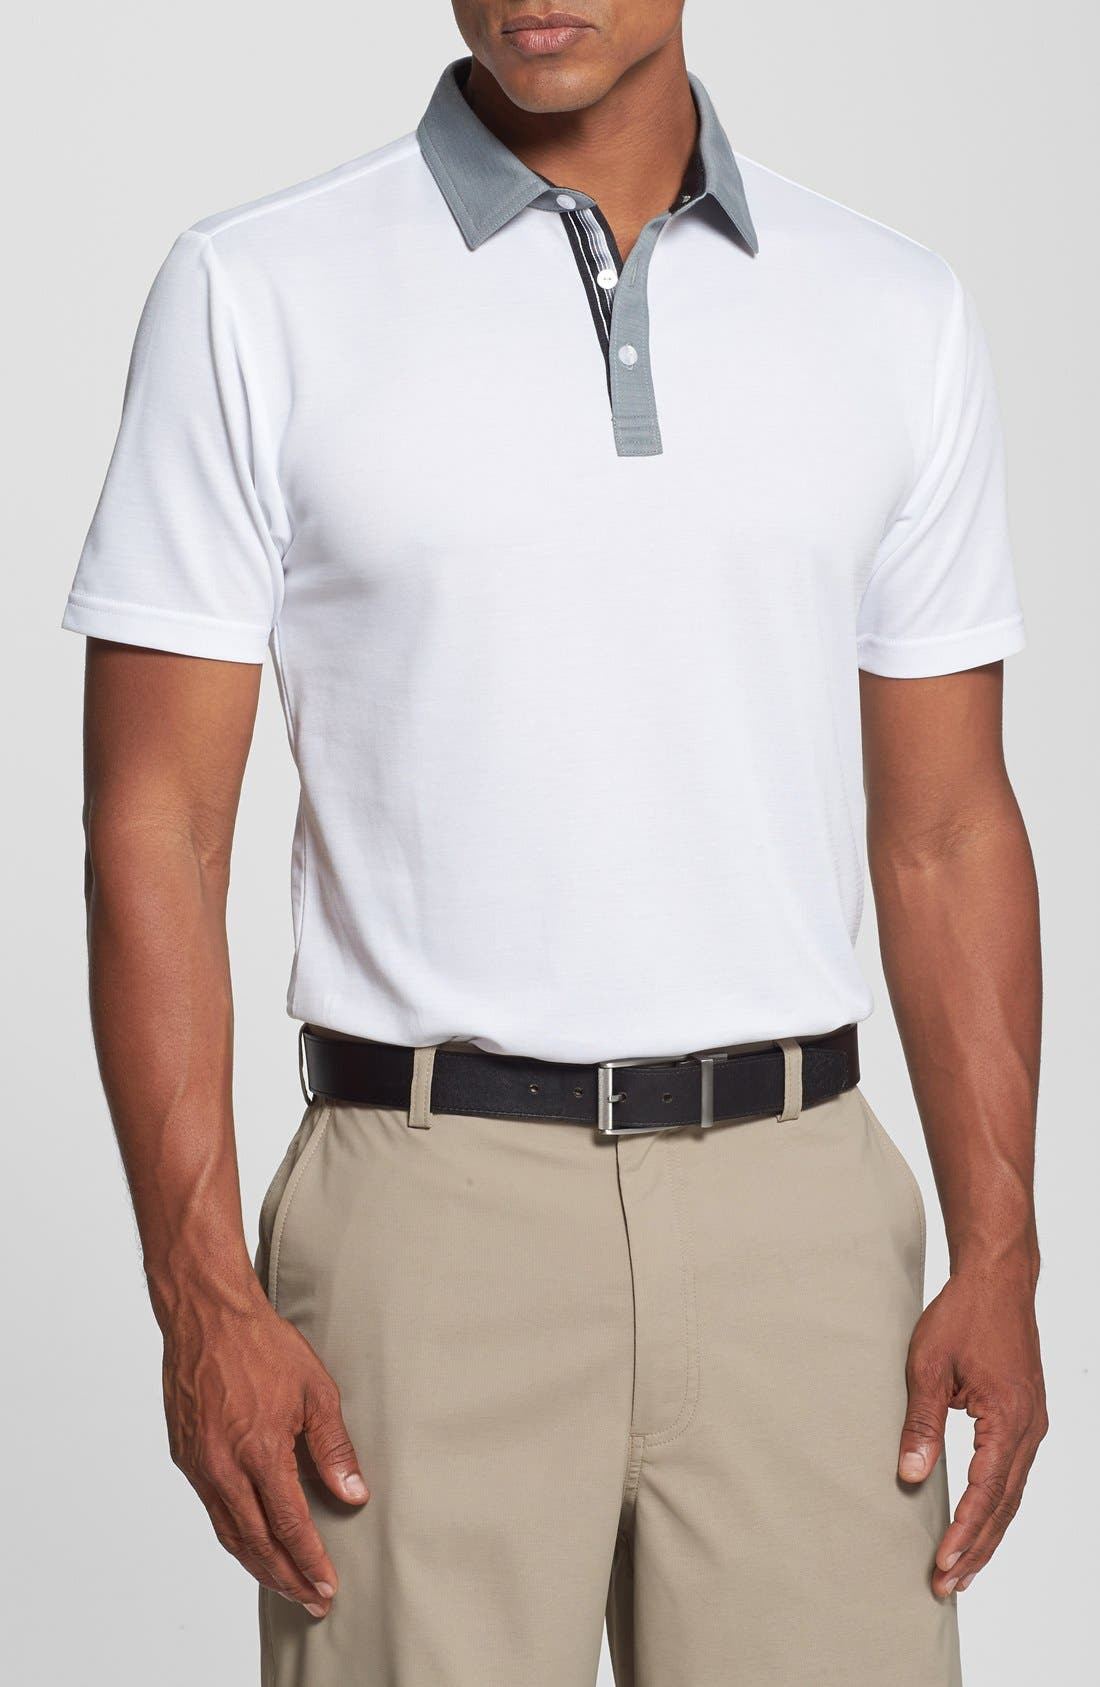 Main Image - Travis Mathew 'Collins' Trim Fit Performance Golf Polo